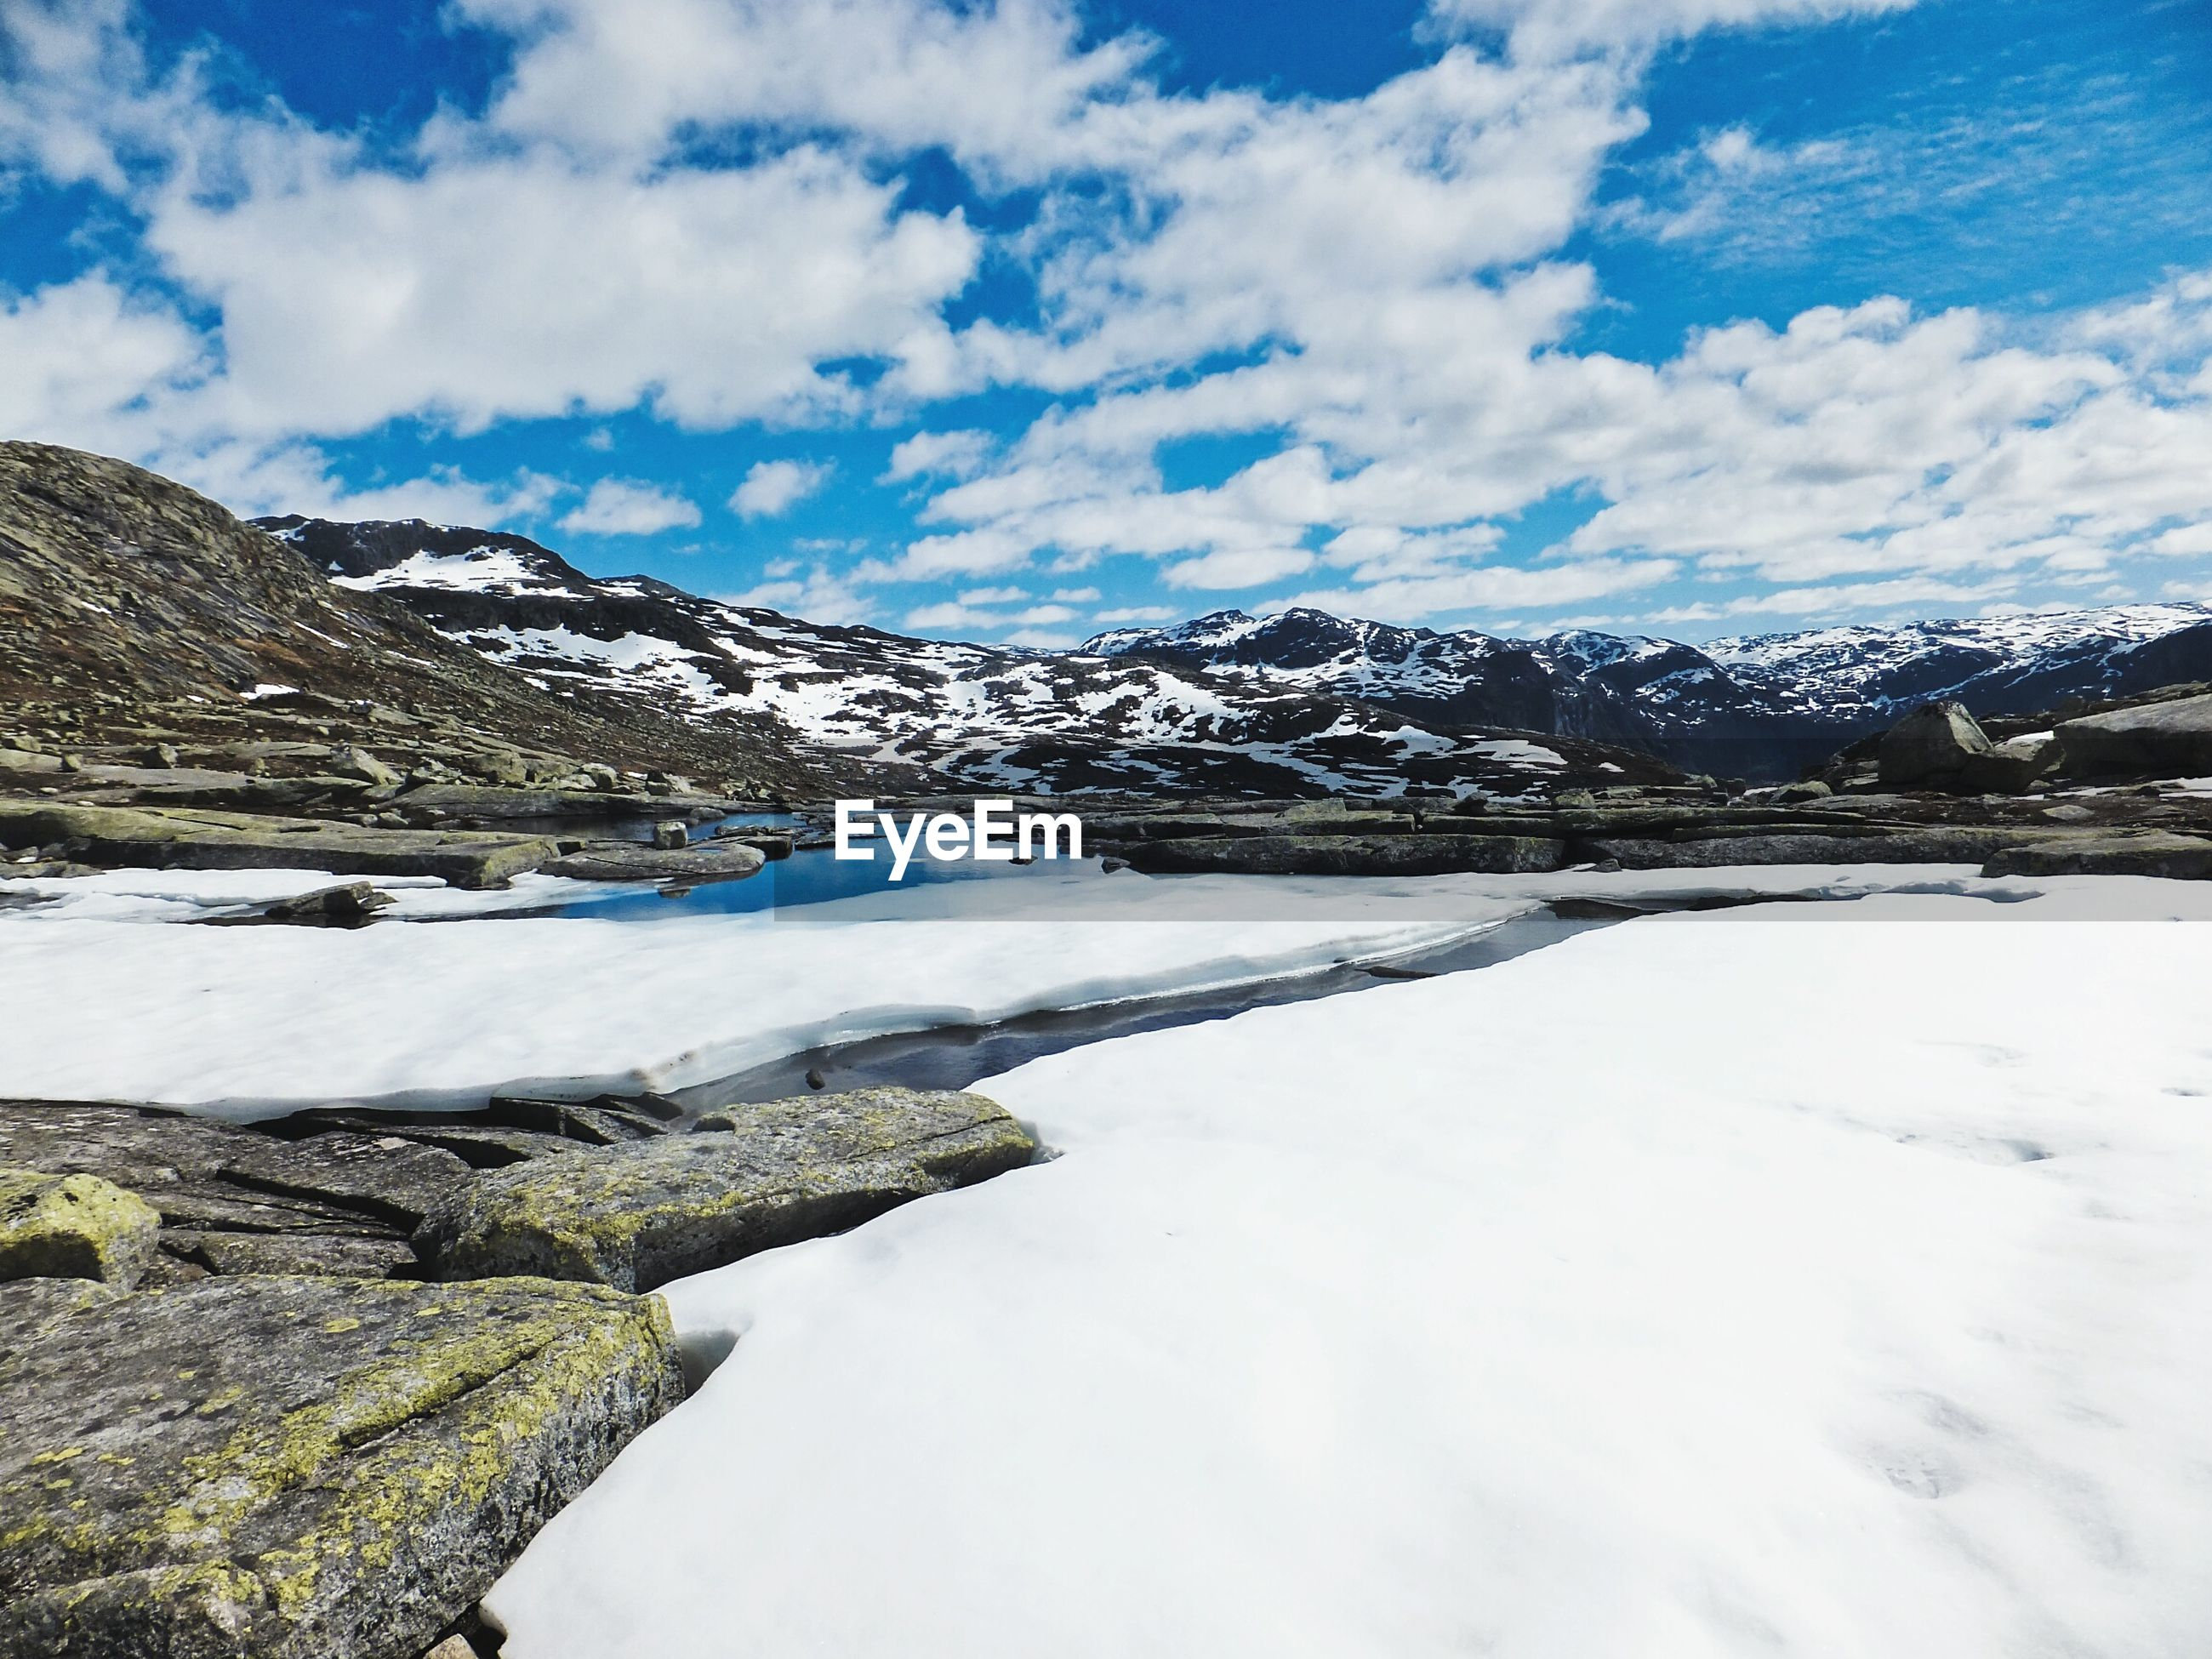 Scenic view of lake and snow covered field by mountains against sky